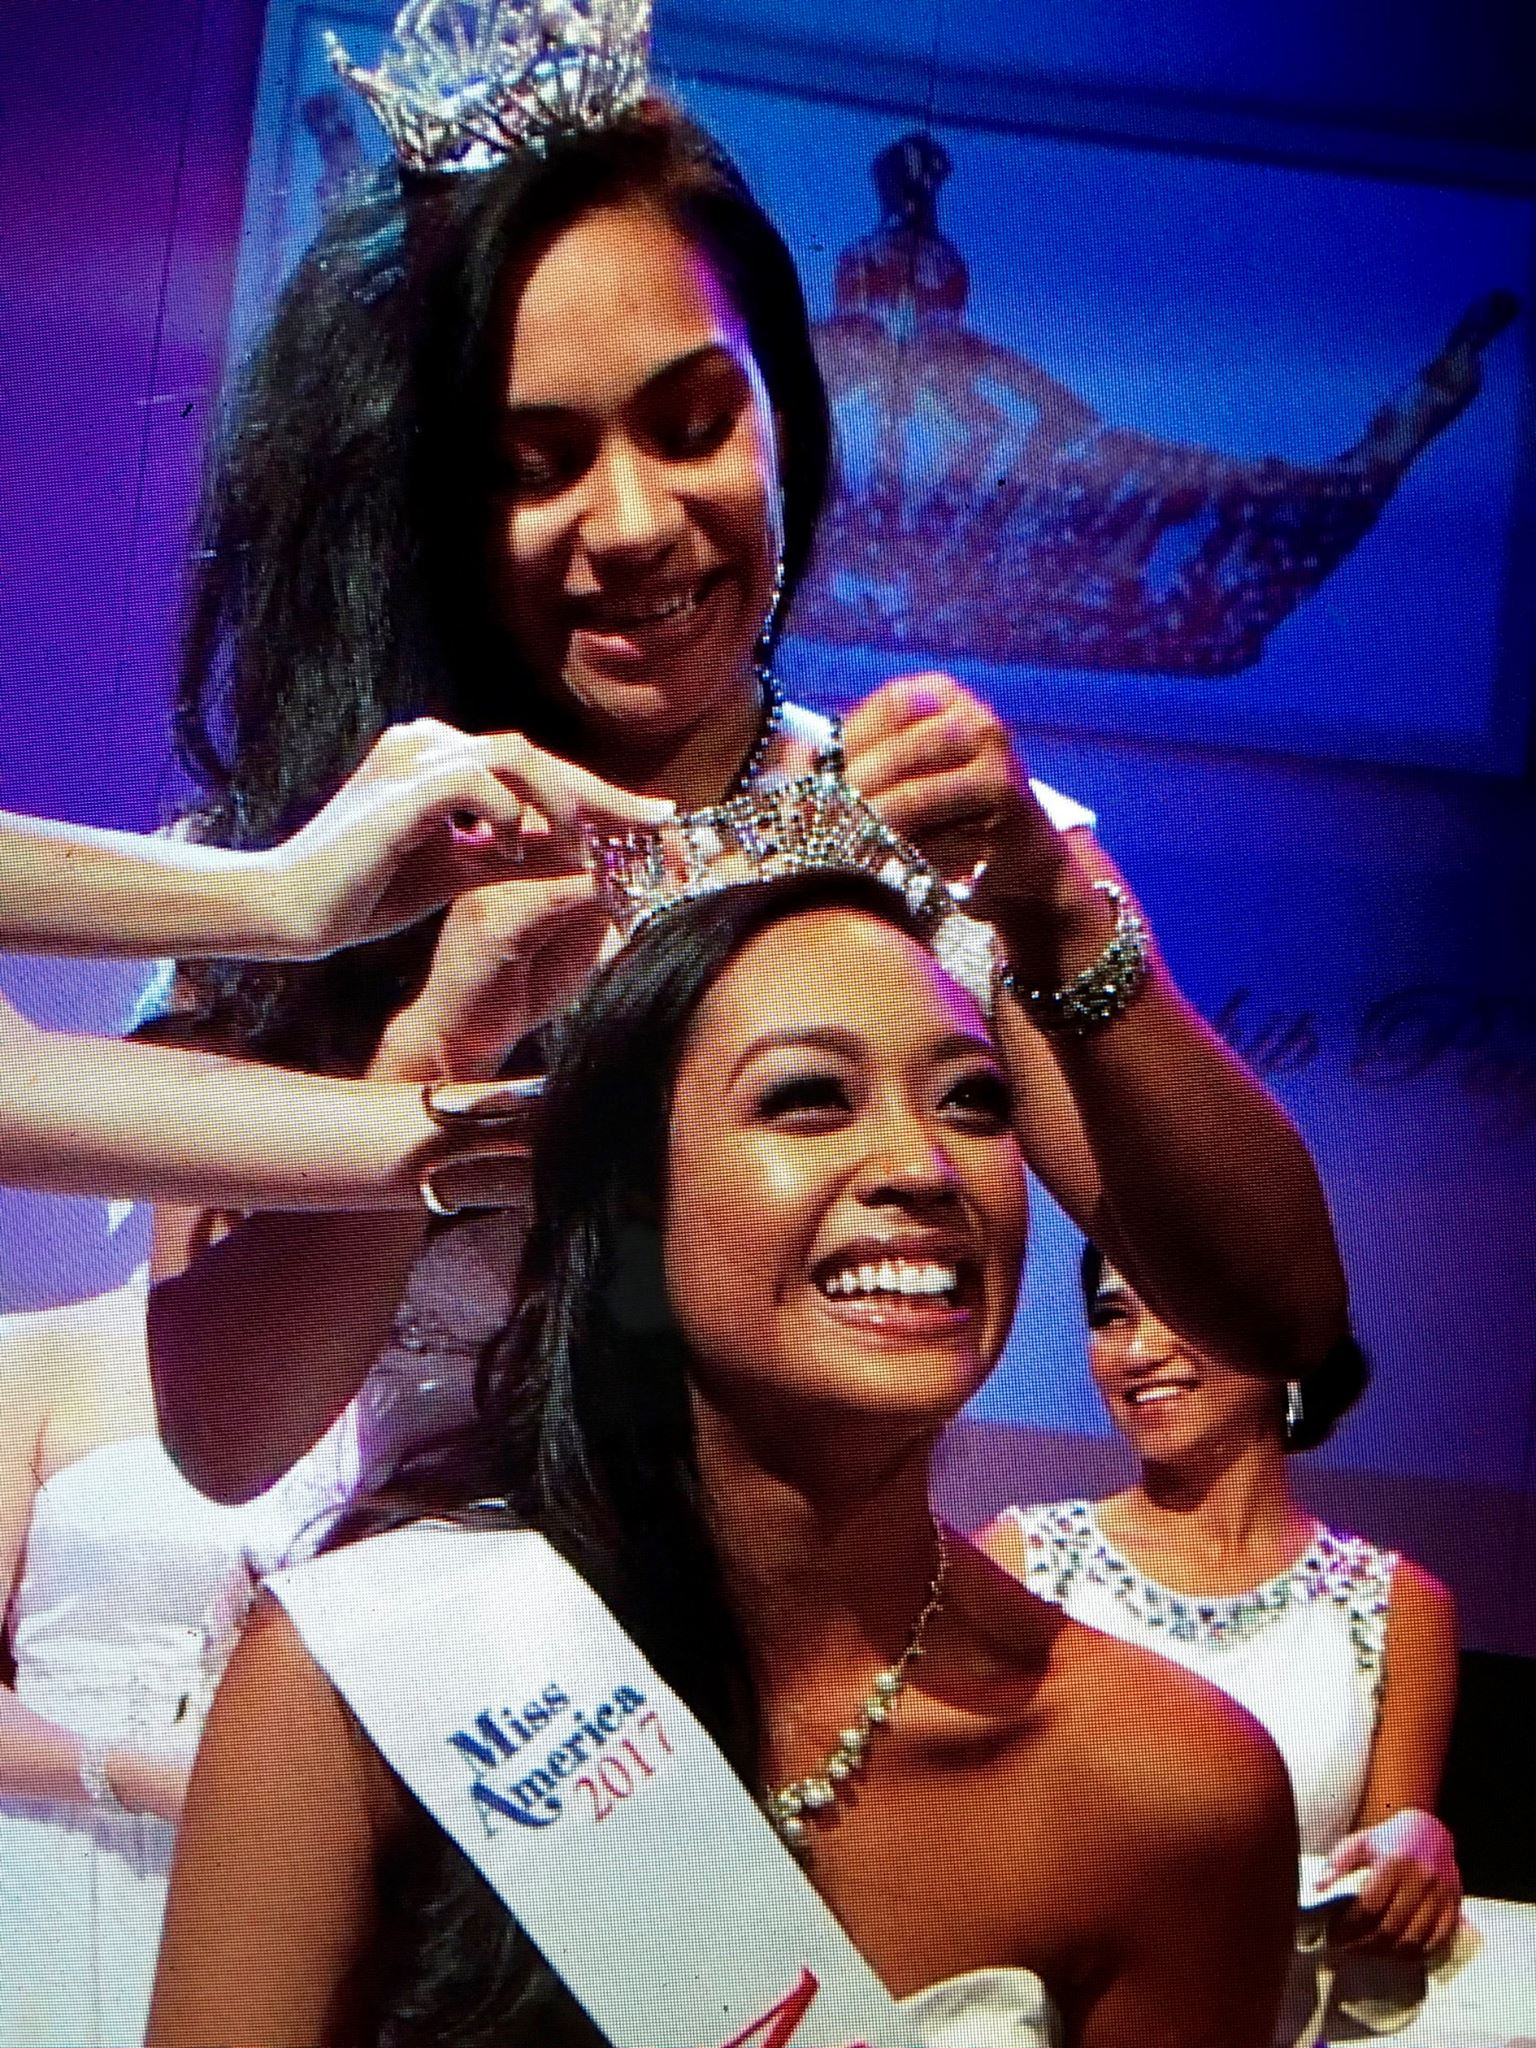 Miss Maui 2017 Casey Sales-Salcedo. PC: Miss Maui Organization